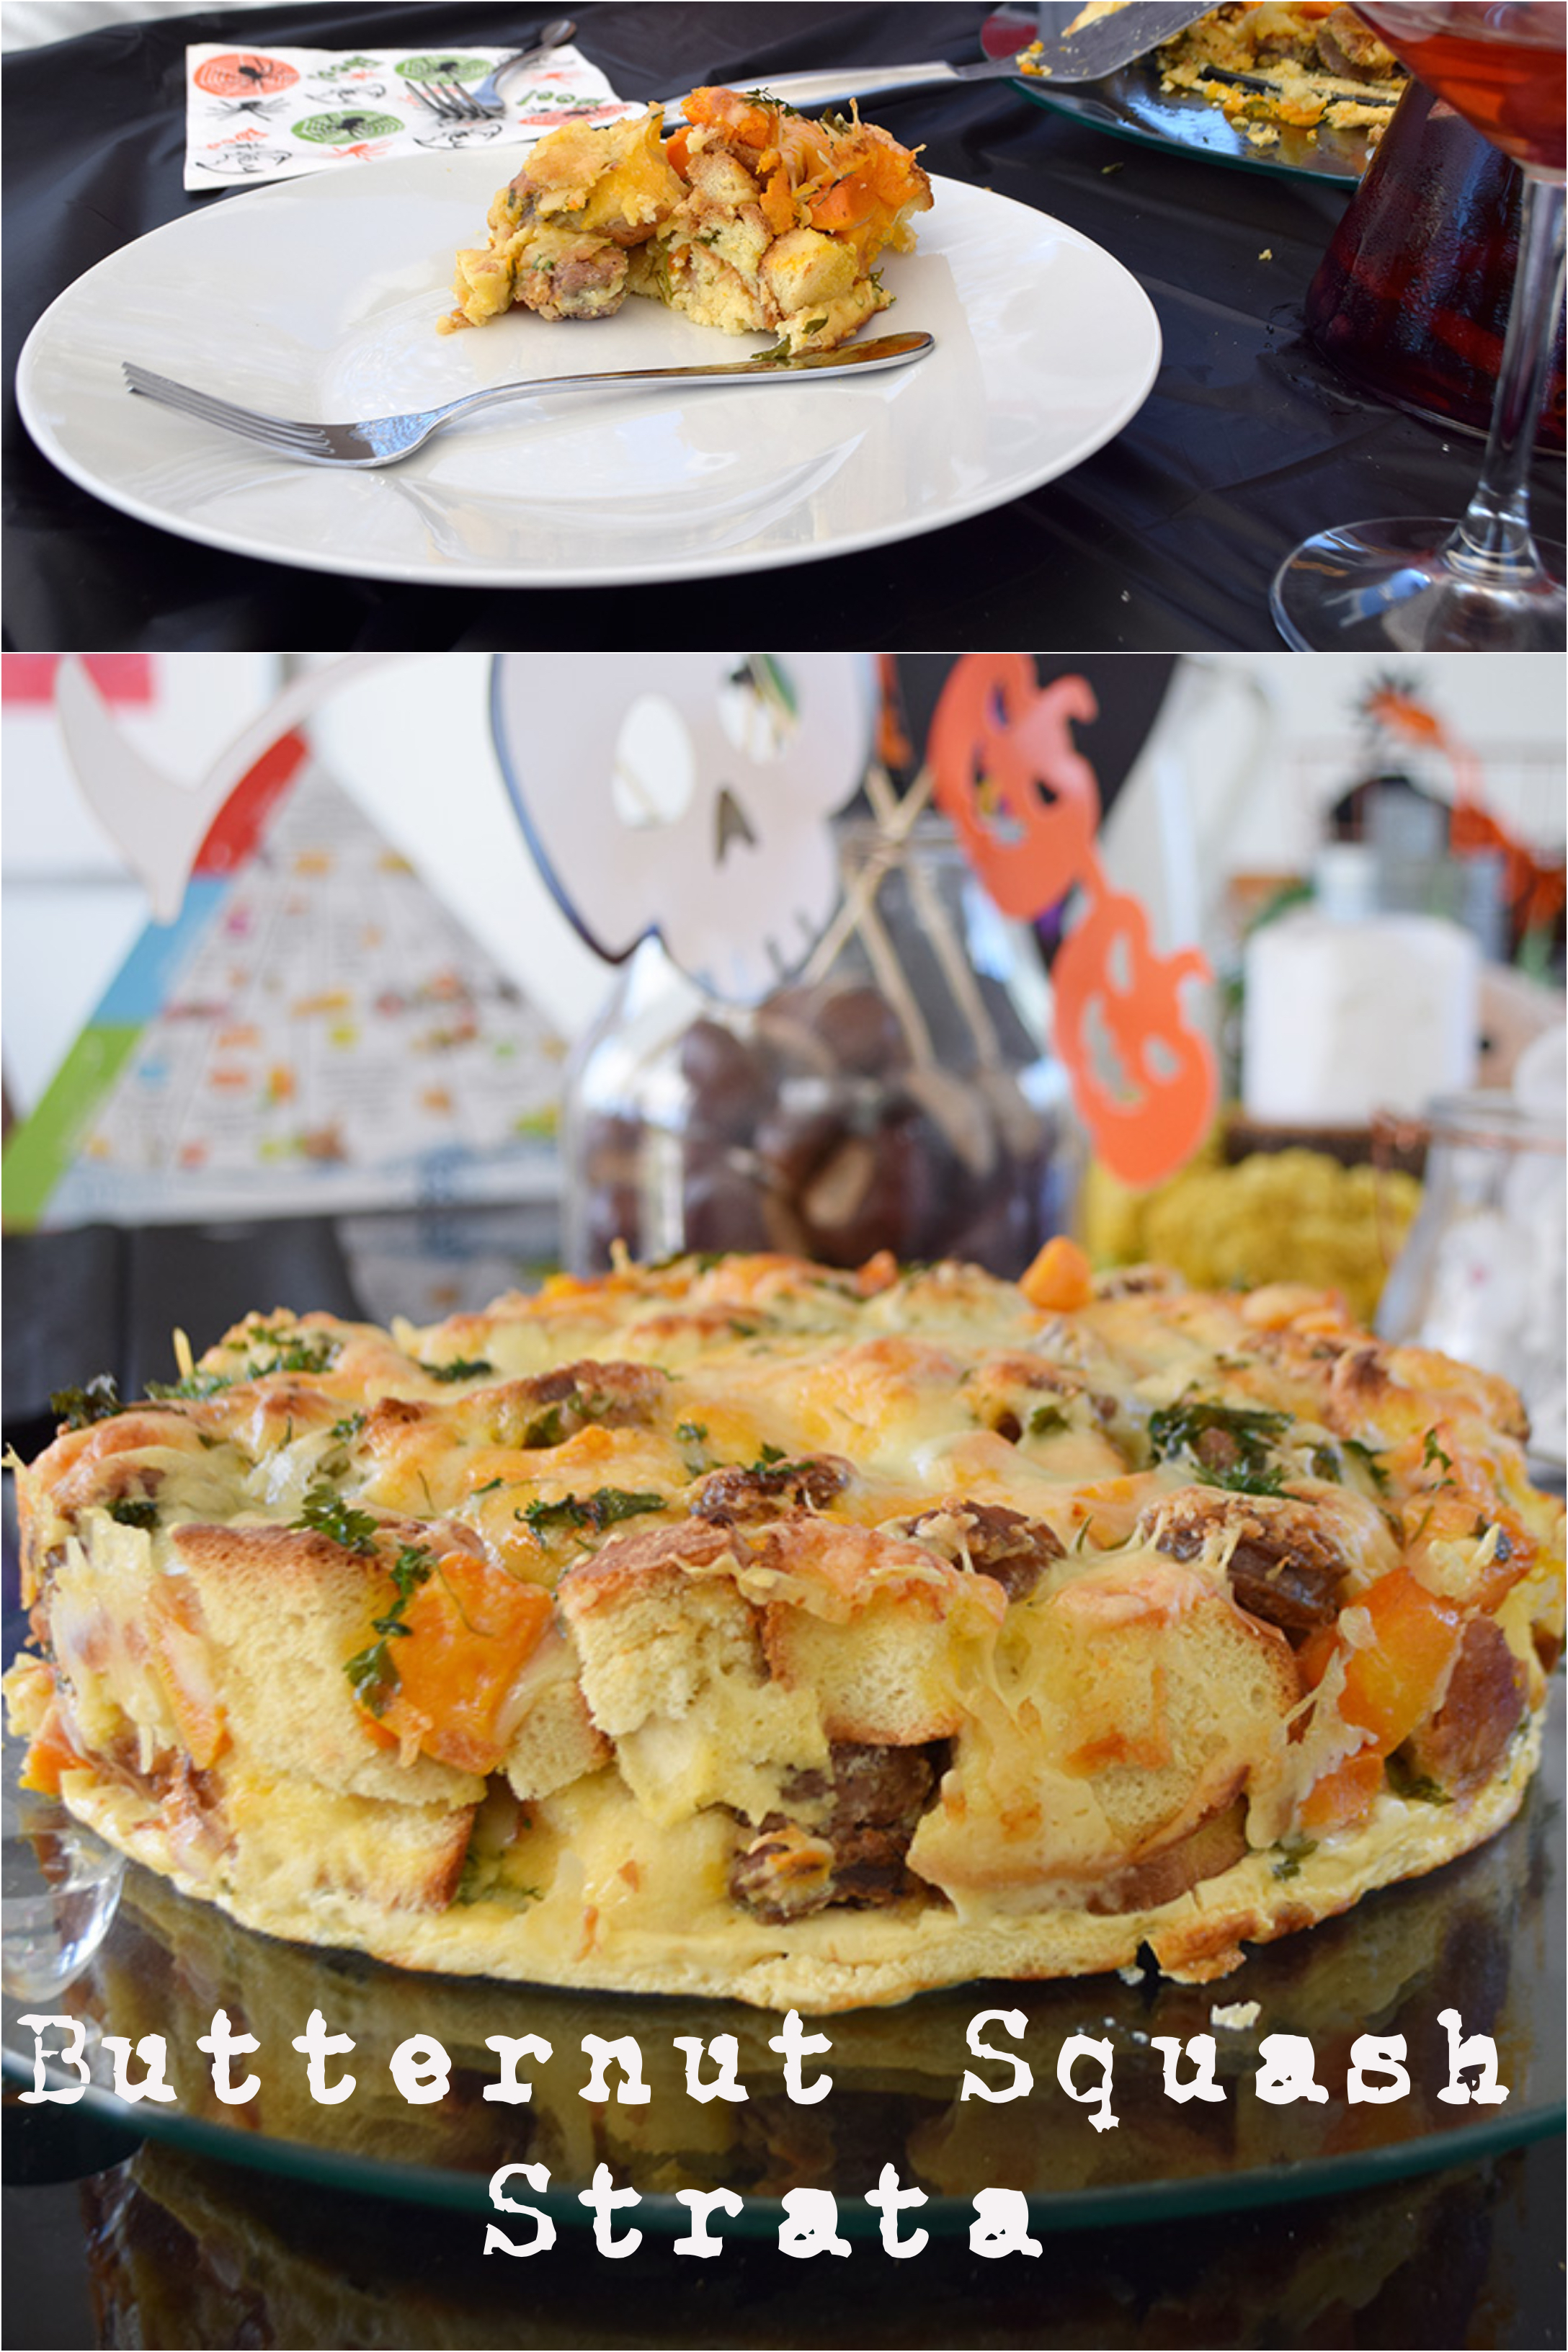 Butternut squash strata full of aroma and flavour